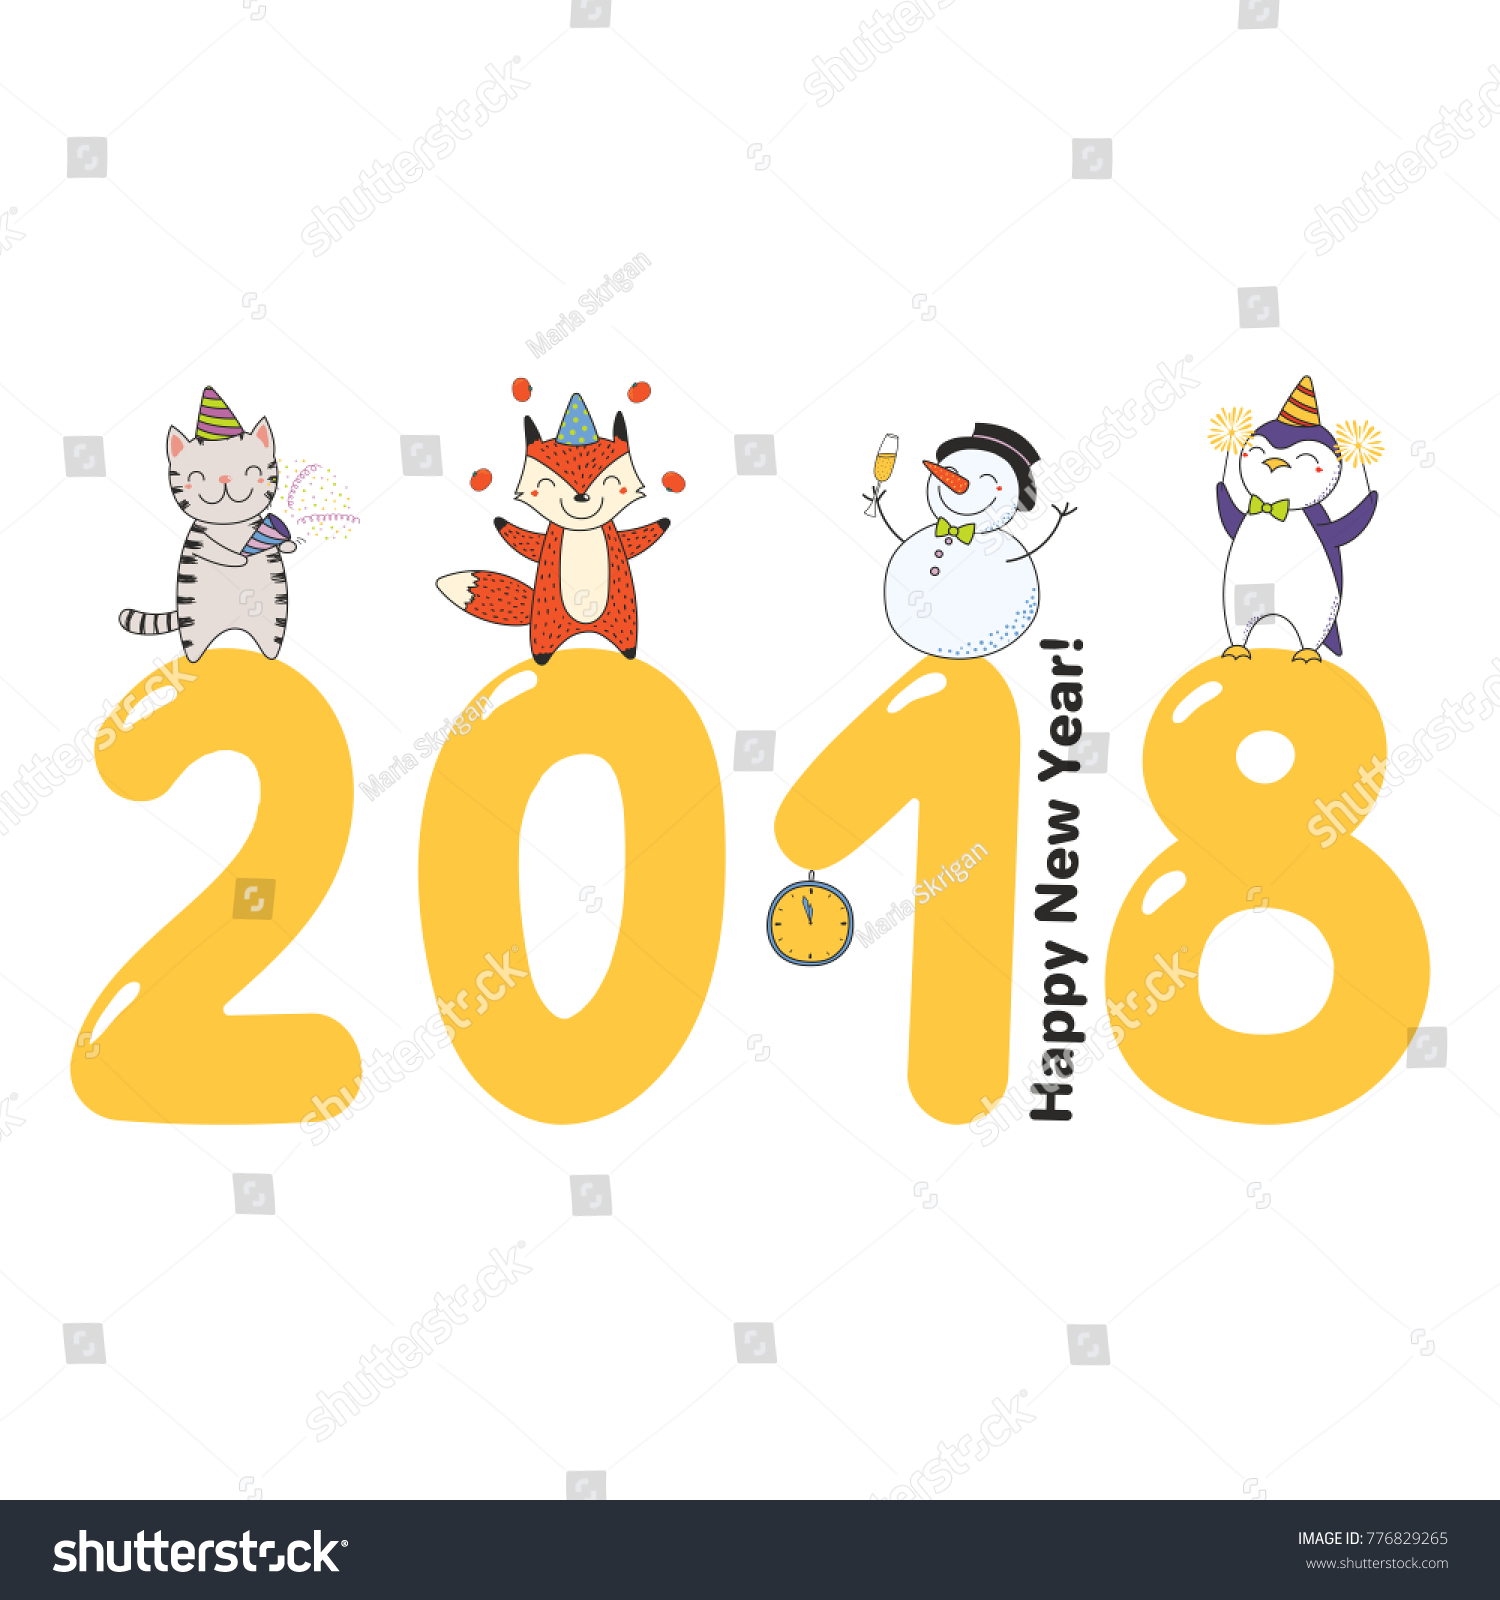 hand drawn happy new year 2018 greeting card banner template with cute funny cartoon animals